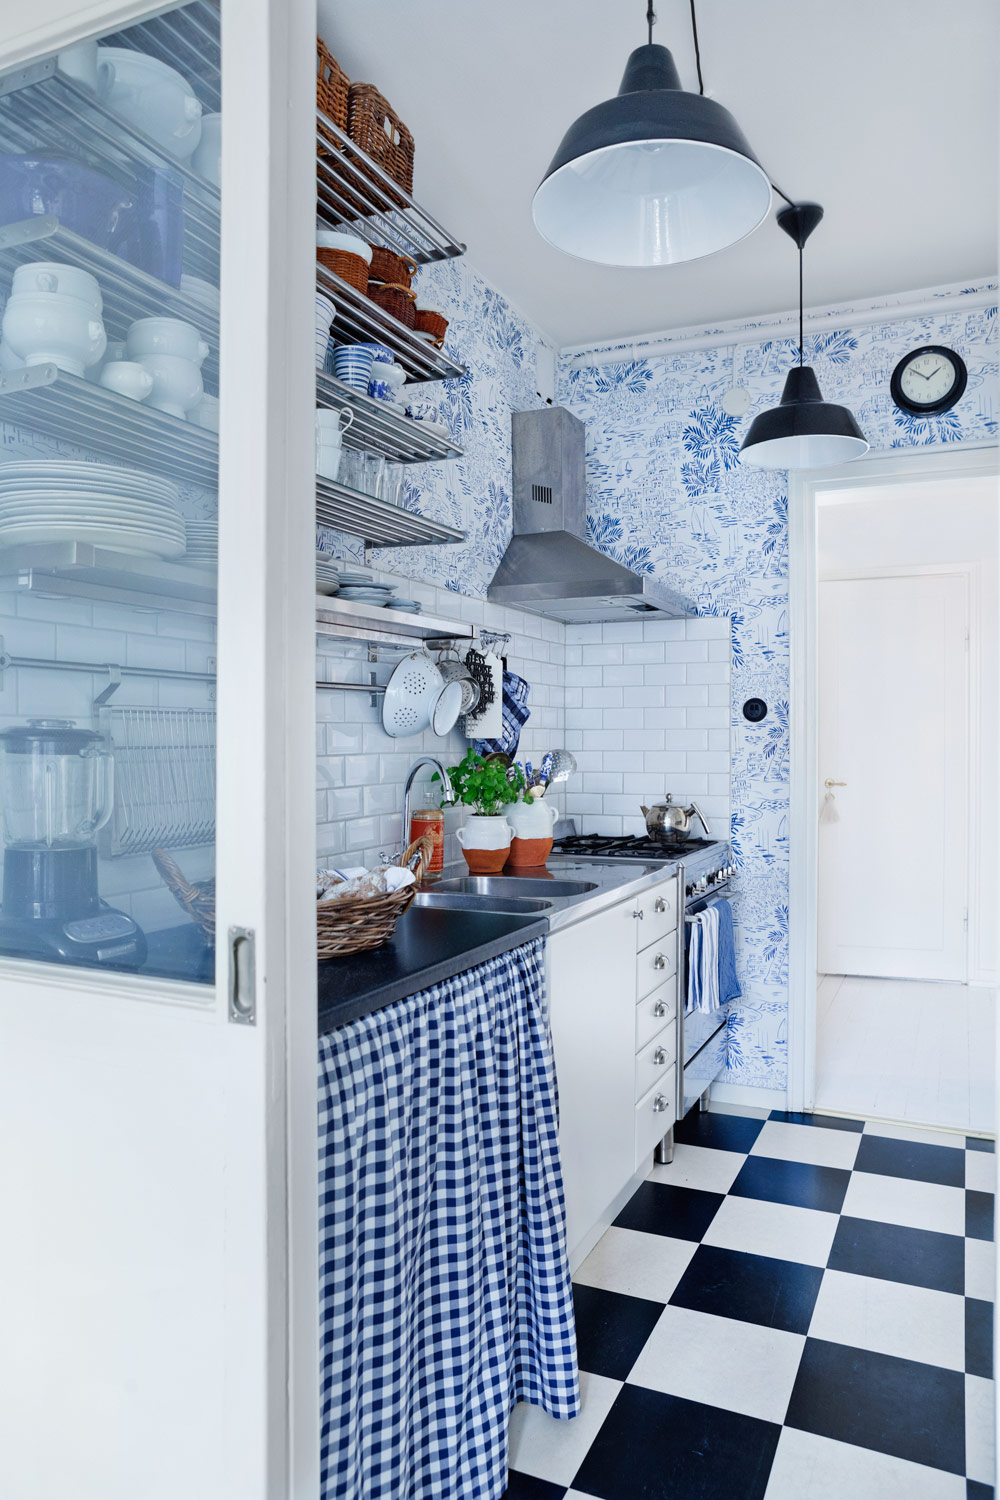 Blue Gingham Kitchen Skirt White Subway Tiles Checkerboard Floors